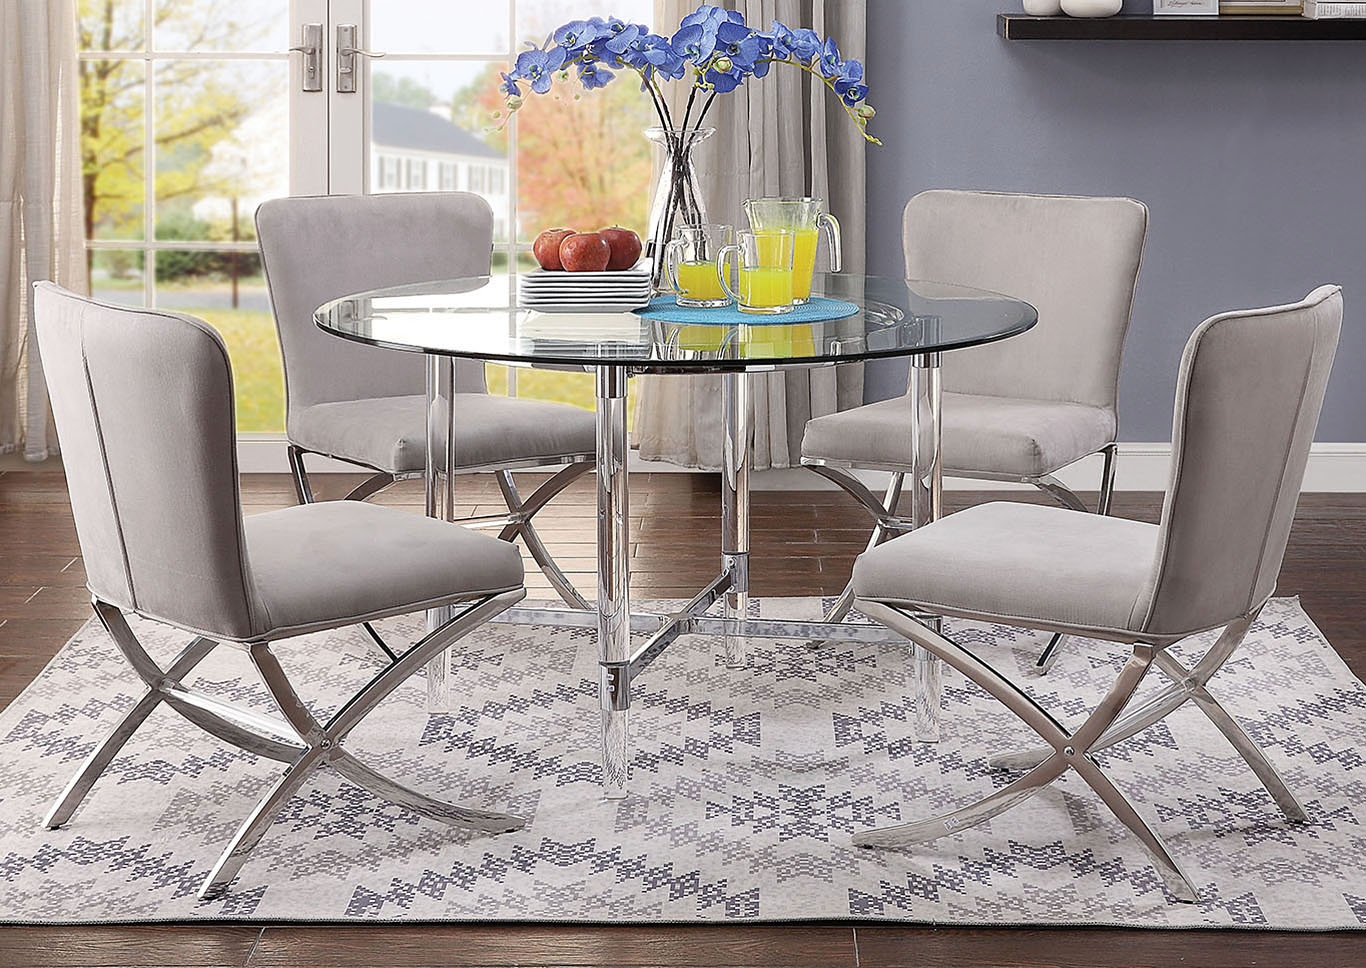 Furniture Now Daire Chrome Clear Glass Dining Table